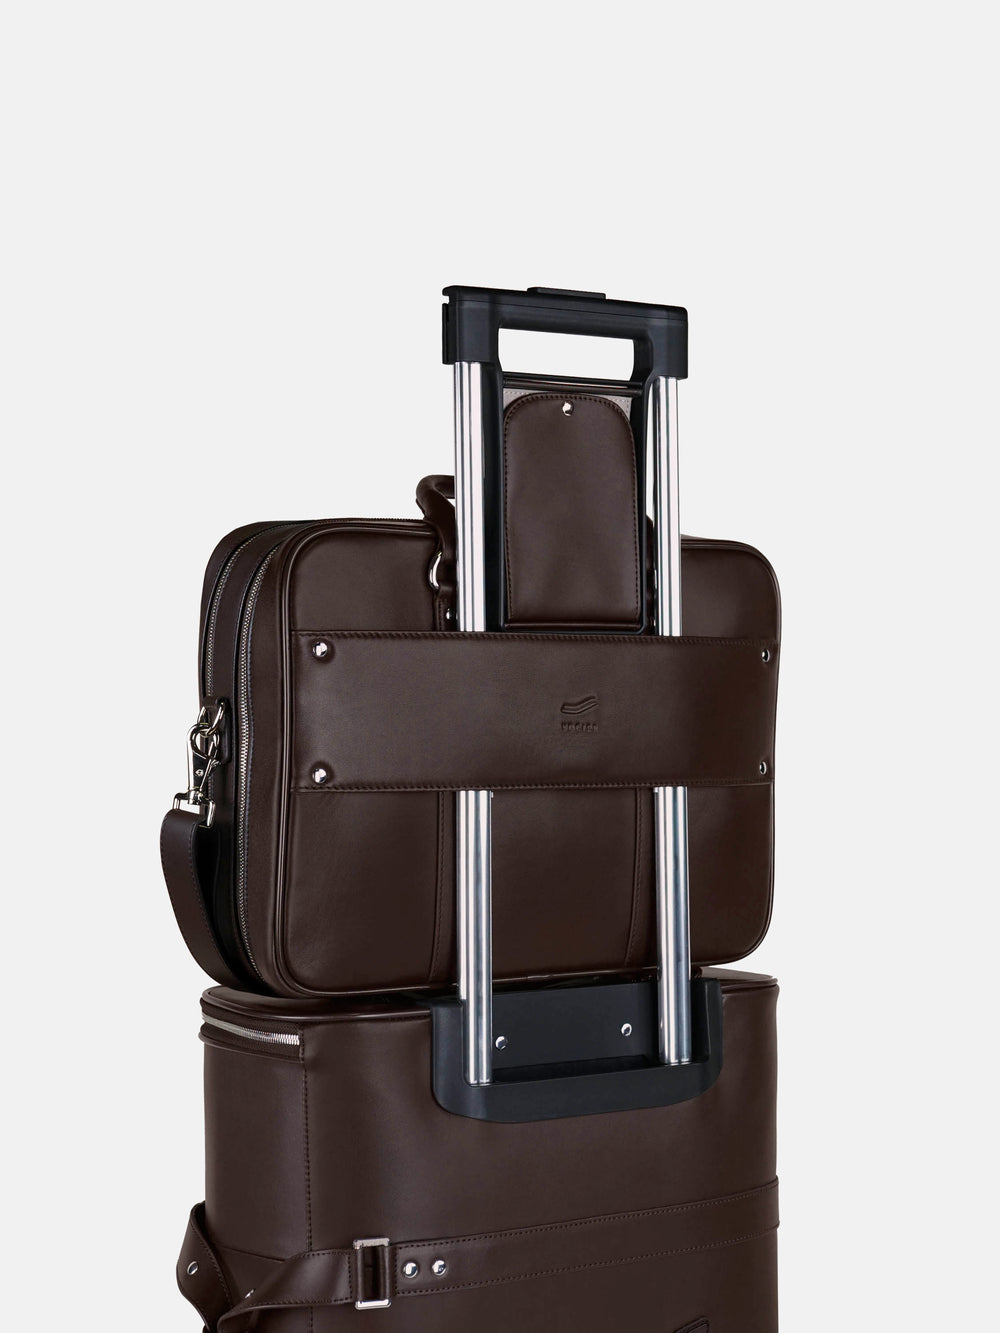 f26 on luggage brown leather braunes leder